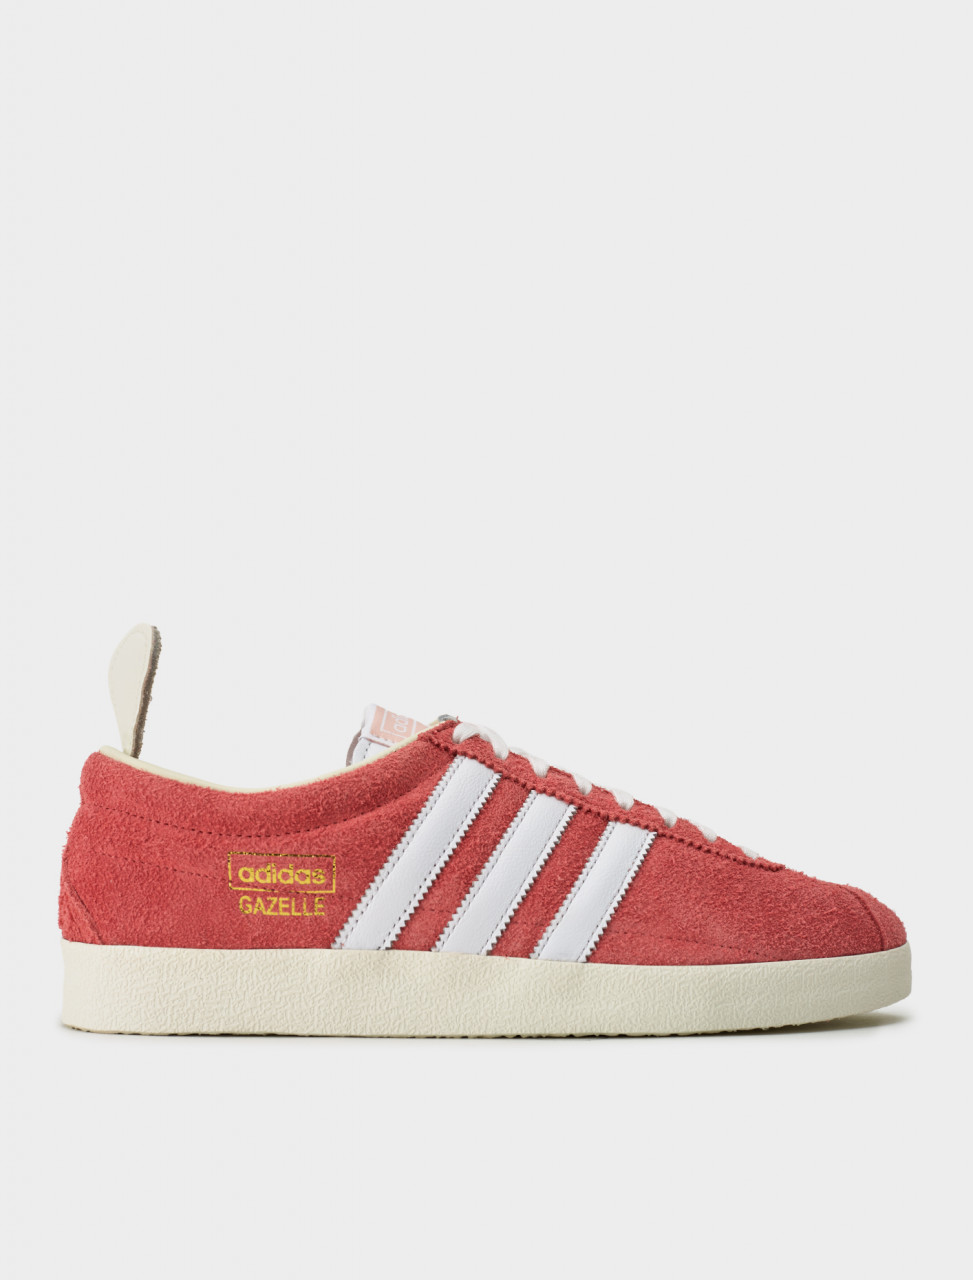 Adidas Gazelle Vintage Sneaker in Real Pink/Footwear White/Off White